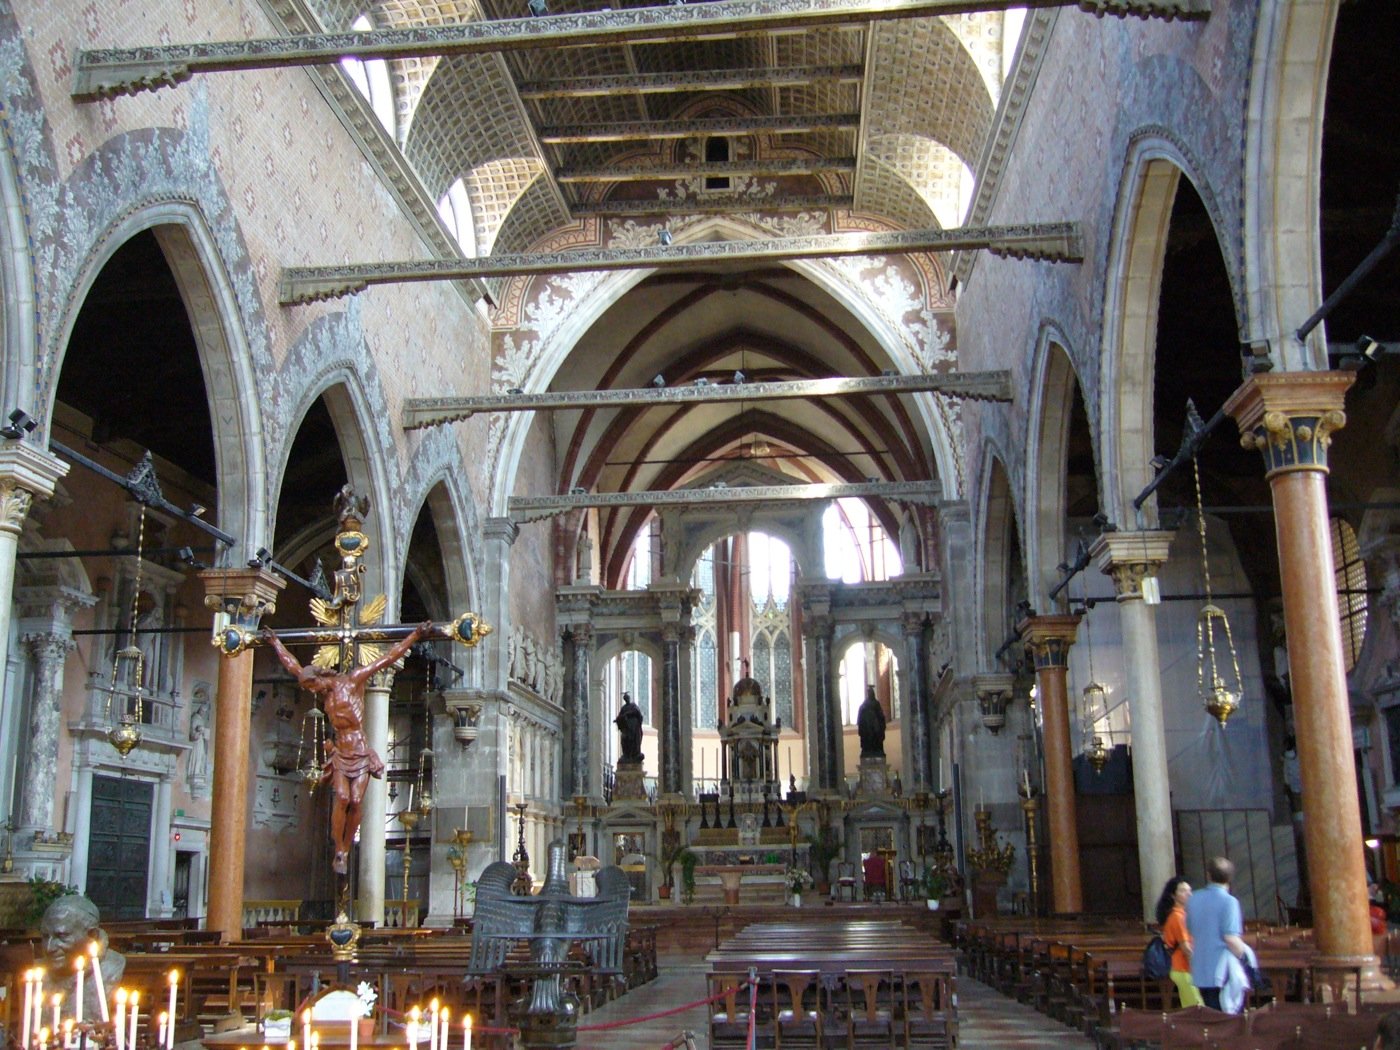 Santo Stefano. The Gothic interior with a ceiling like a ship's hull